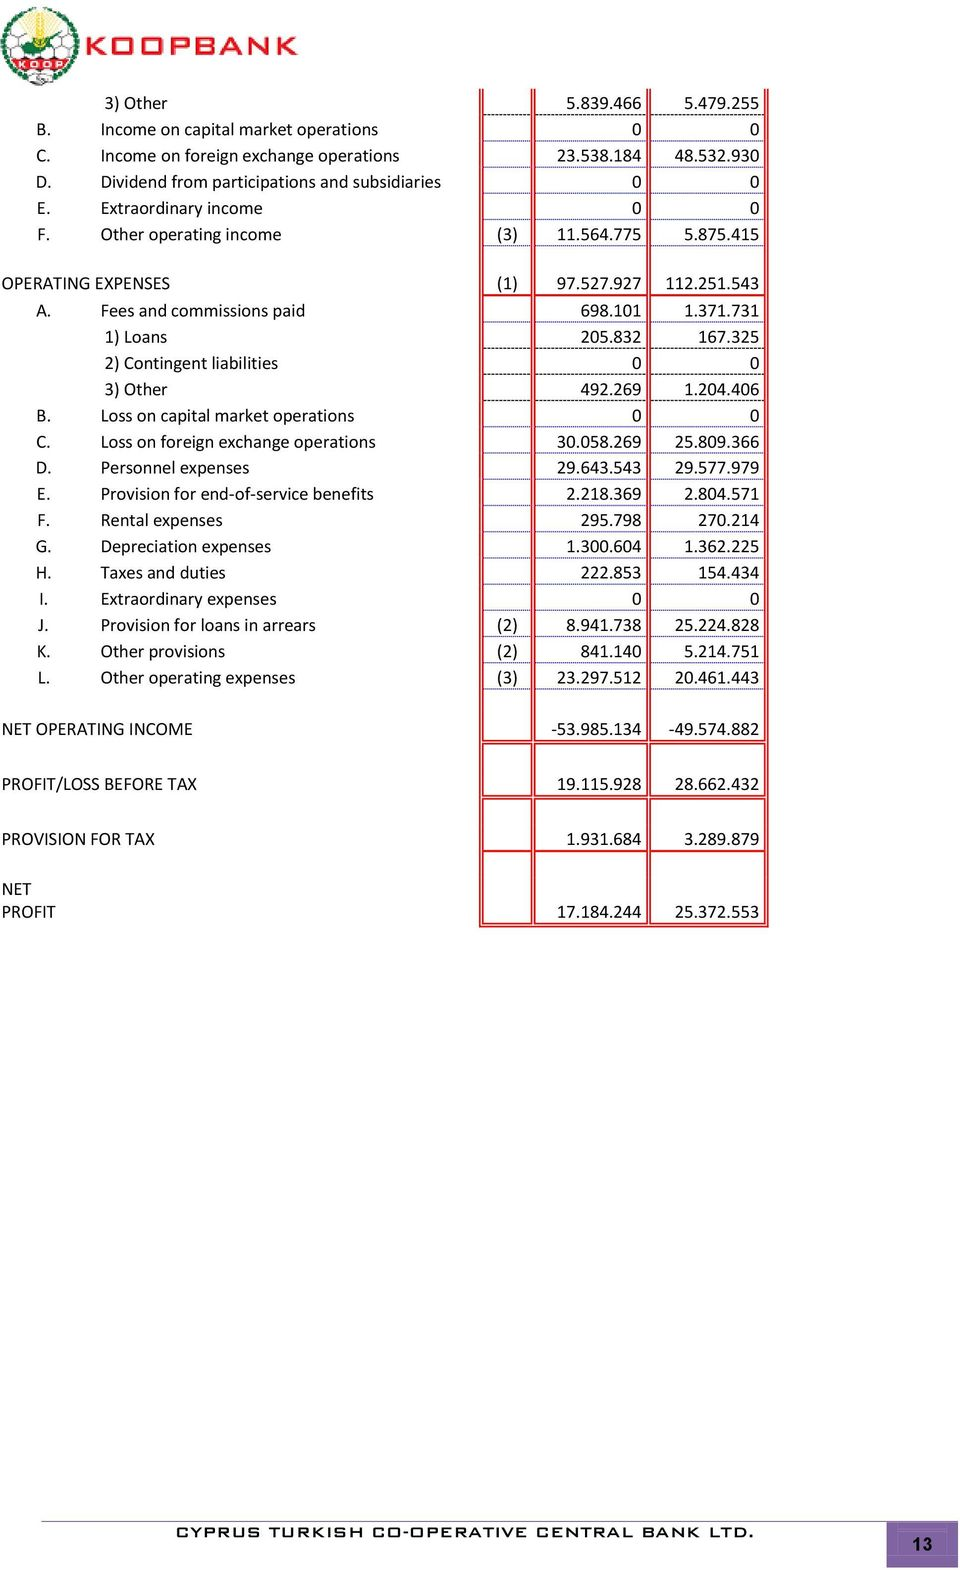 325 2) Contingent liabilities 0 0 3) Other 492.269 1.204.406 B. Loss on capital market operations 0 0 C. Loss on foreign exchange operations 30.058.269 25.809.366 D. Personnel expenses 29.643.543 29.